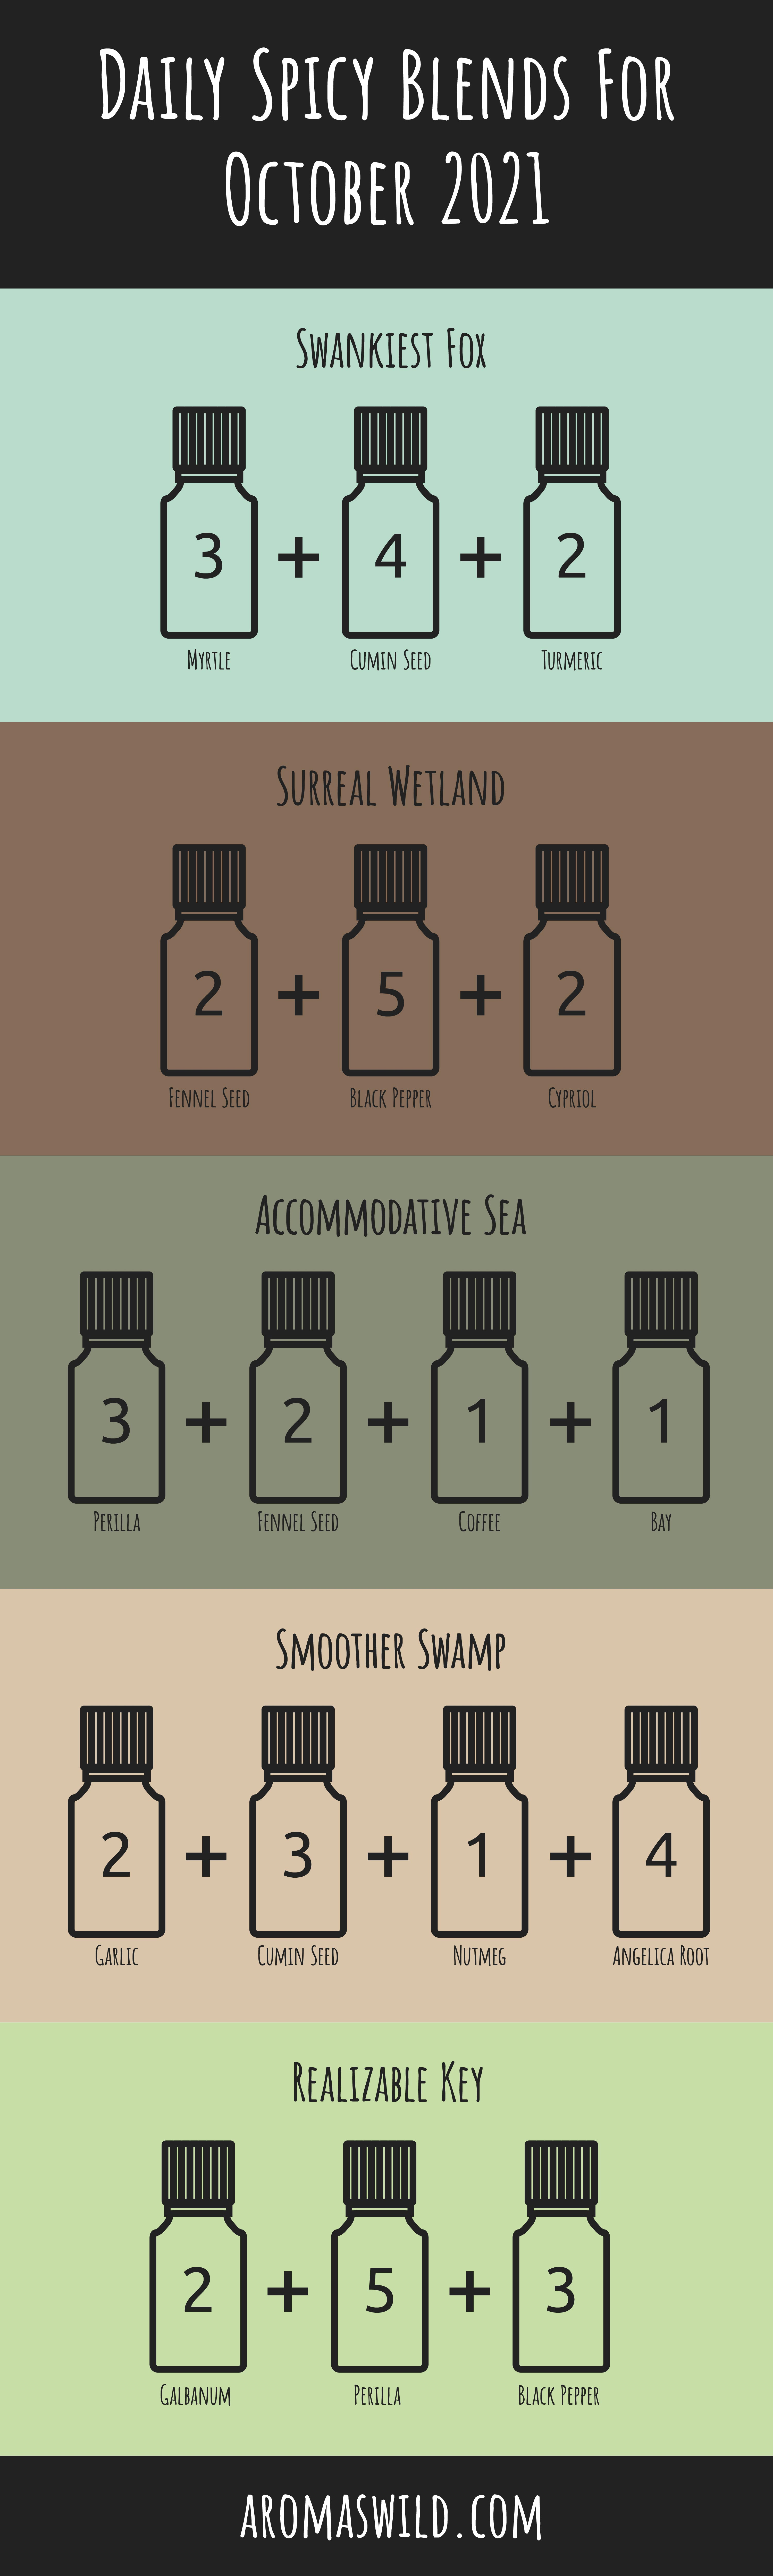 Best Spice Oil Blends For Aromatherapy – Daily Spicy Blends For March 18 October 2021